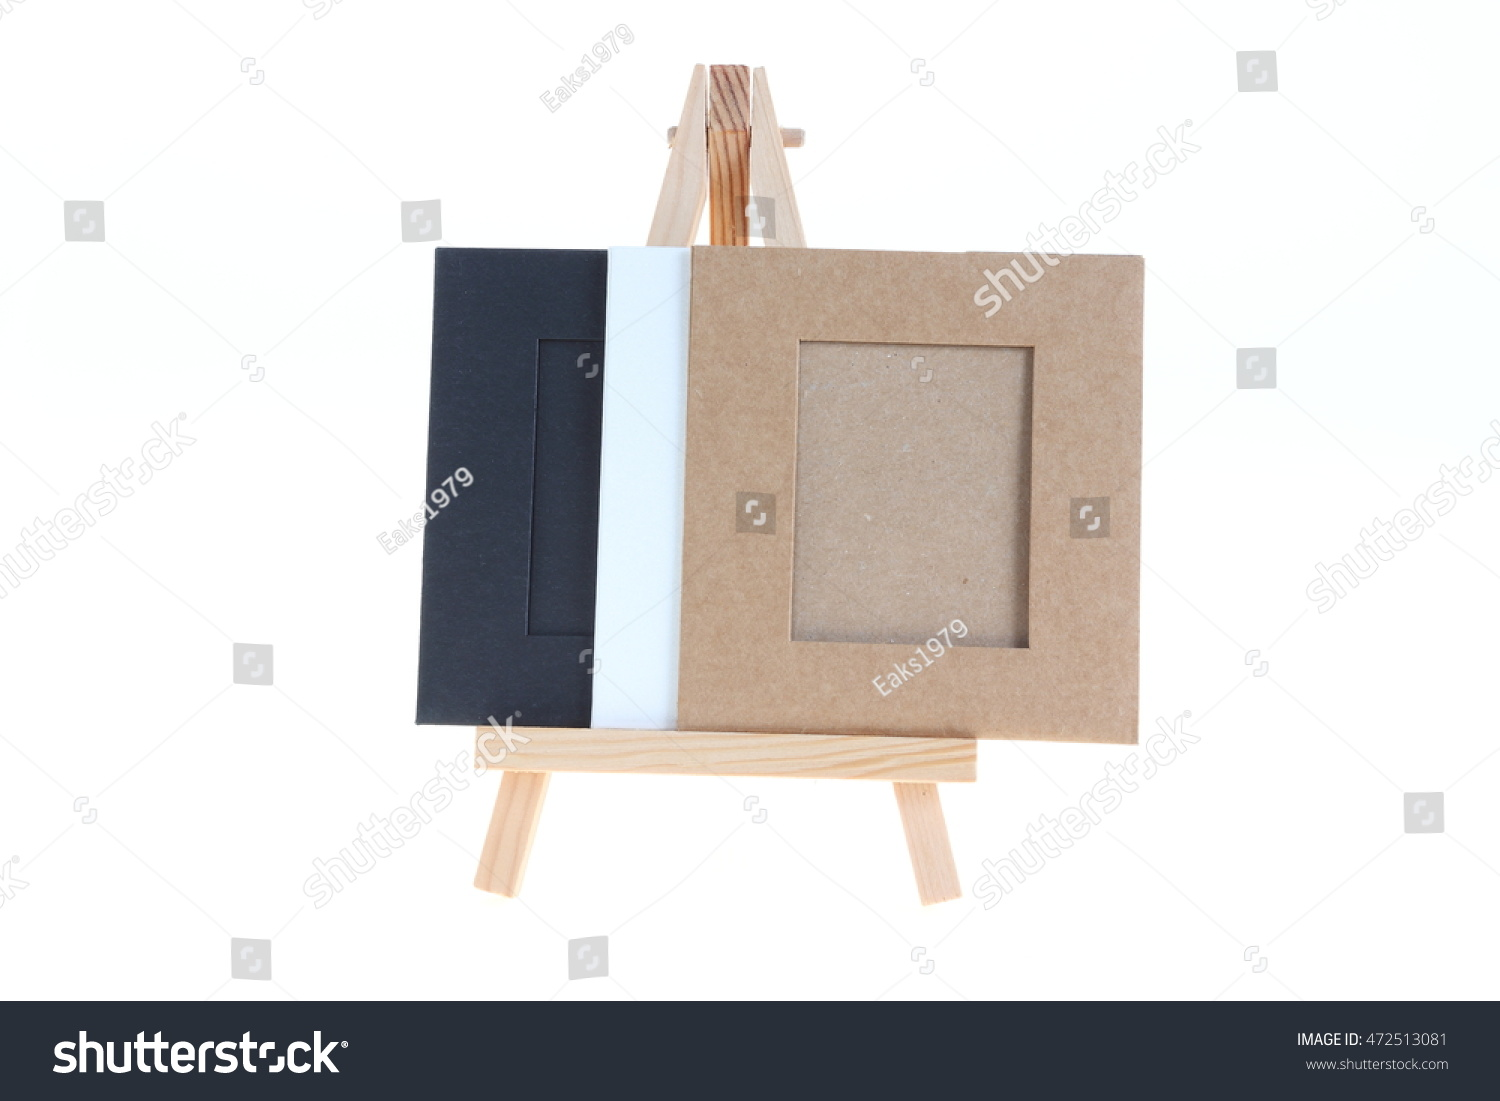 Paper Picture Frame Stand Board On Stock Photo 472513081 - Shutterstock